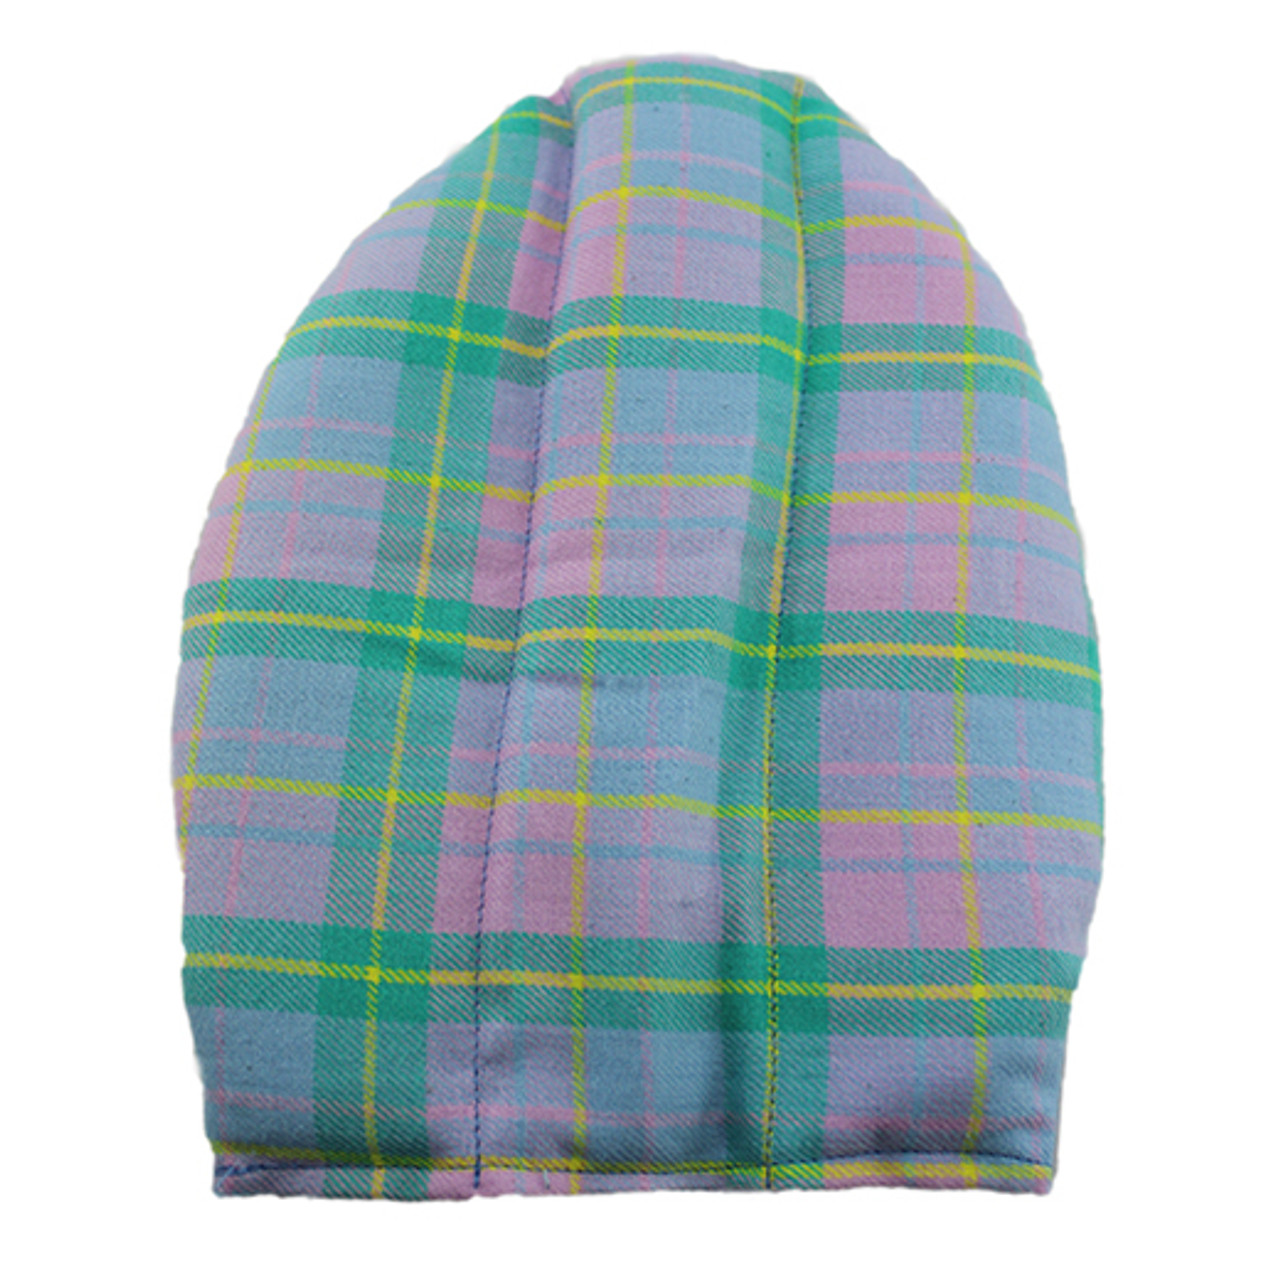 Hand Mitt Provide Relief from Hand and Wrist Pain - Pastel Plaid Flannel Fabric